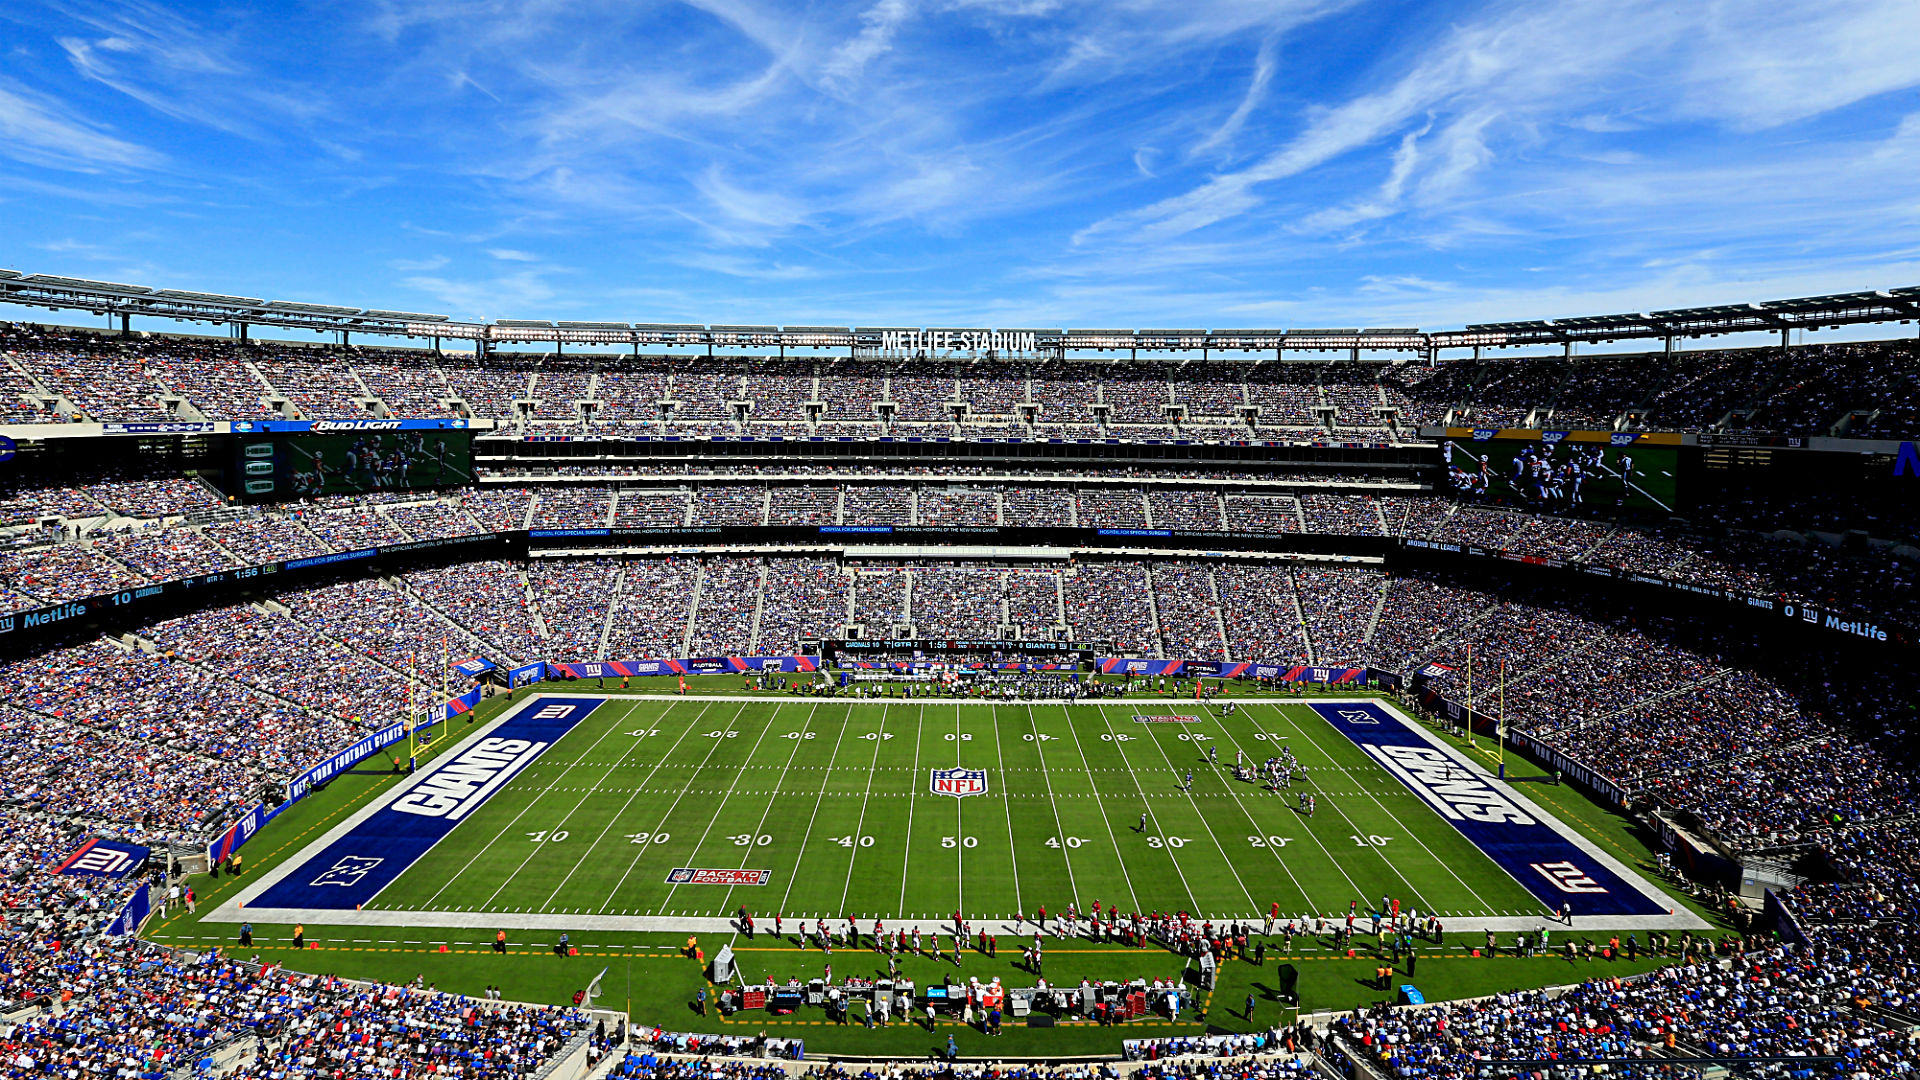 The NFL and coronavirus: Dr. Anthony Fauci outlines what needs to happen for 2020 season to go as scheduled 1